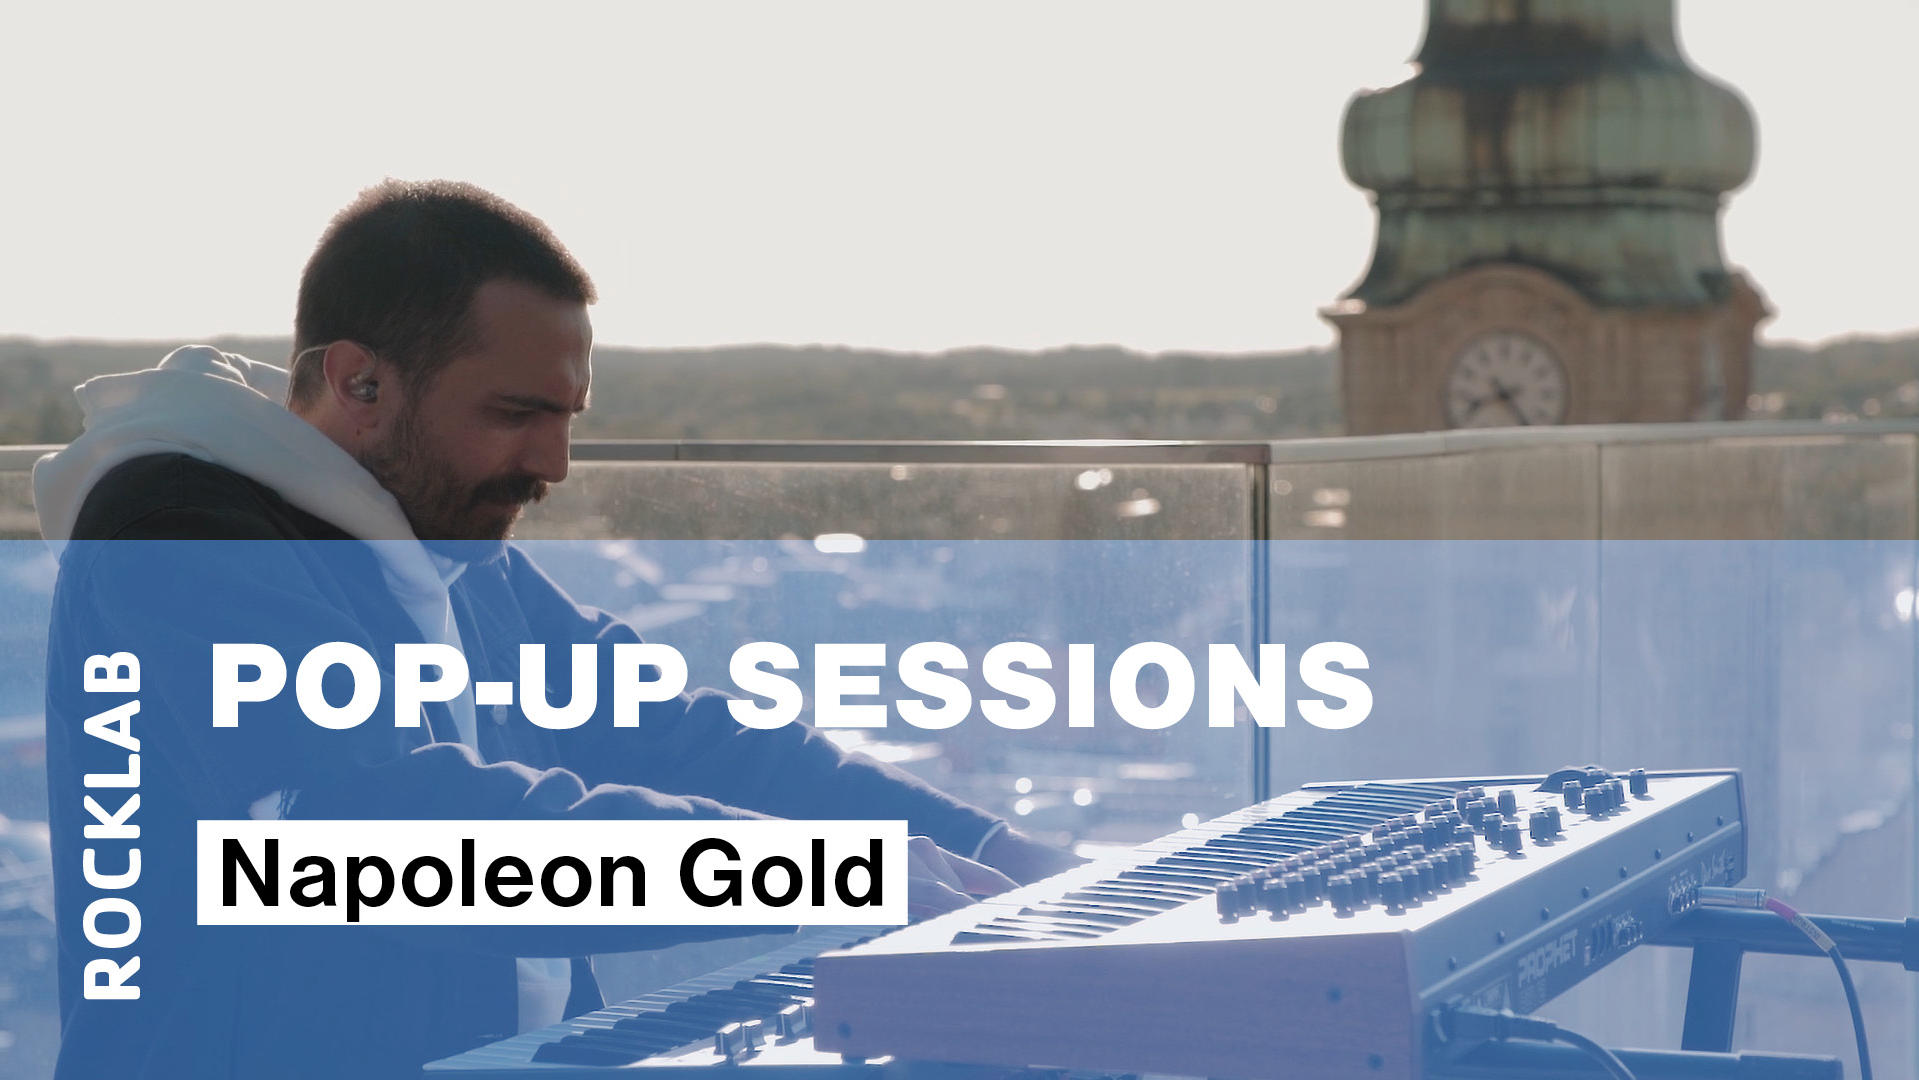 popupsessions_2_napoleongold.jpg